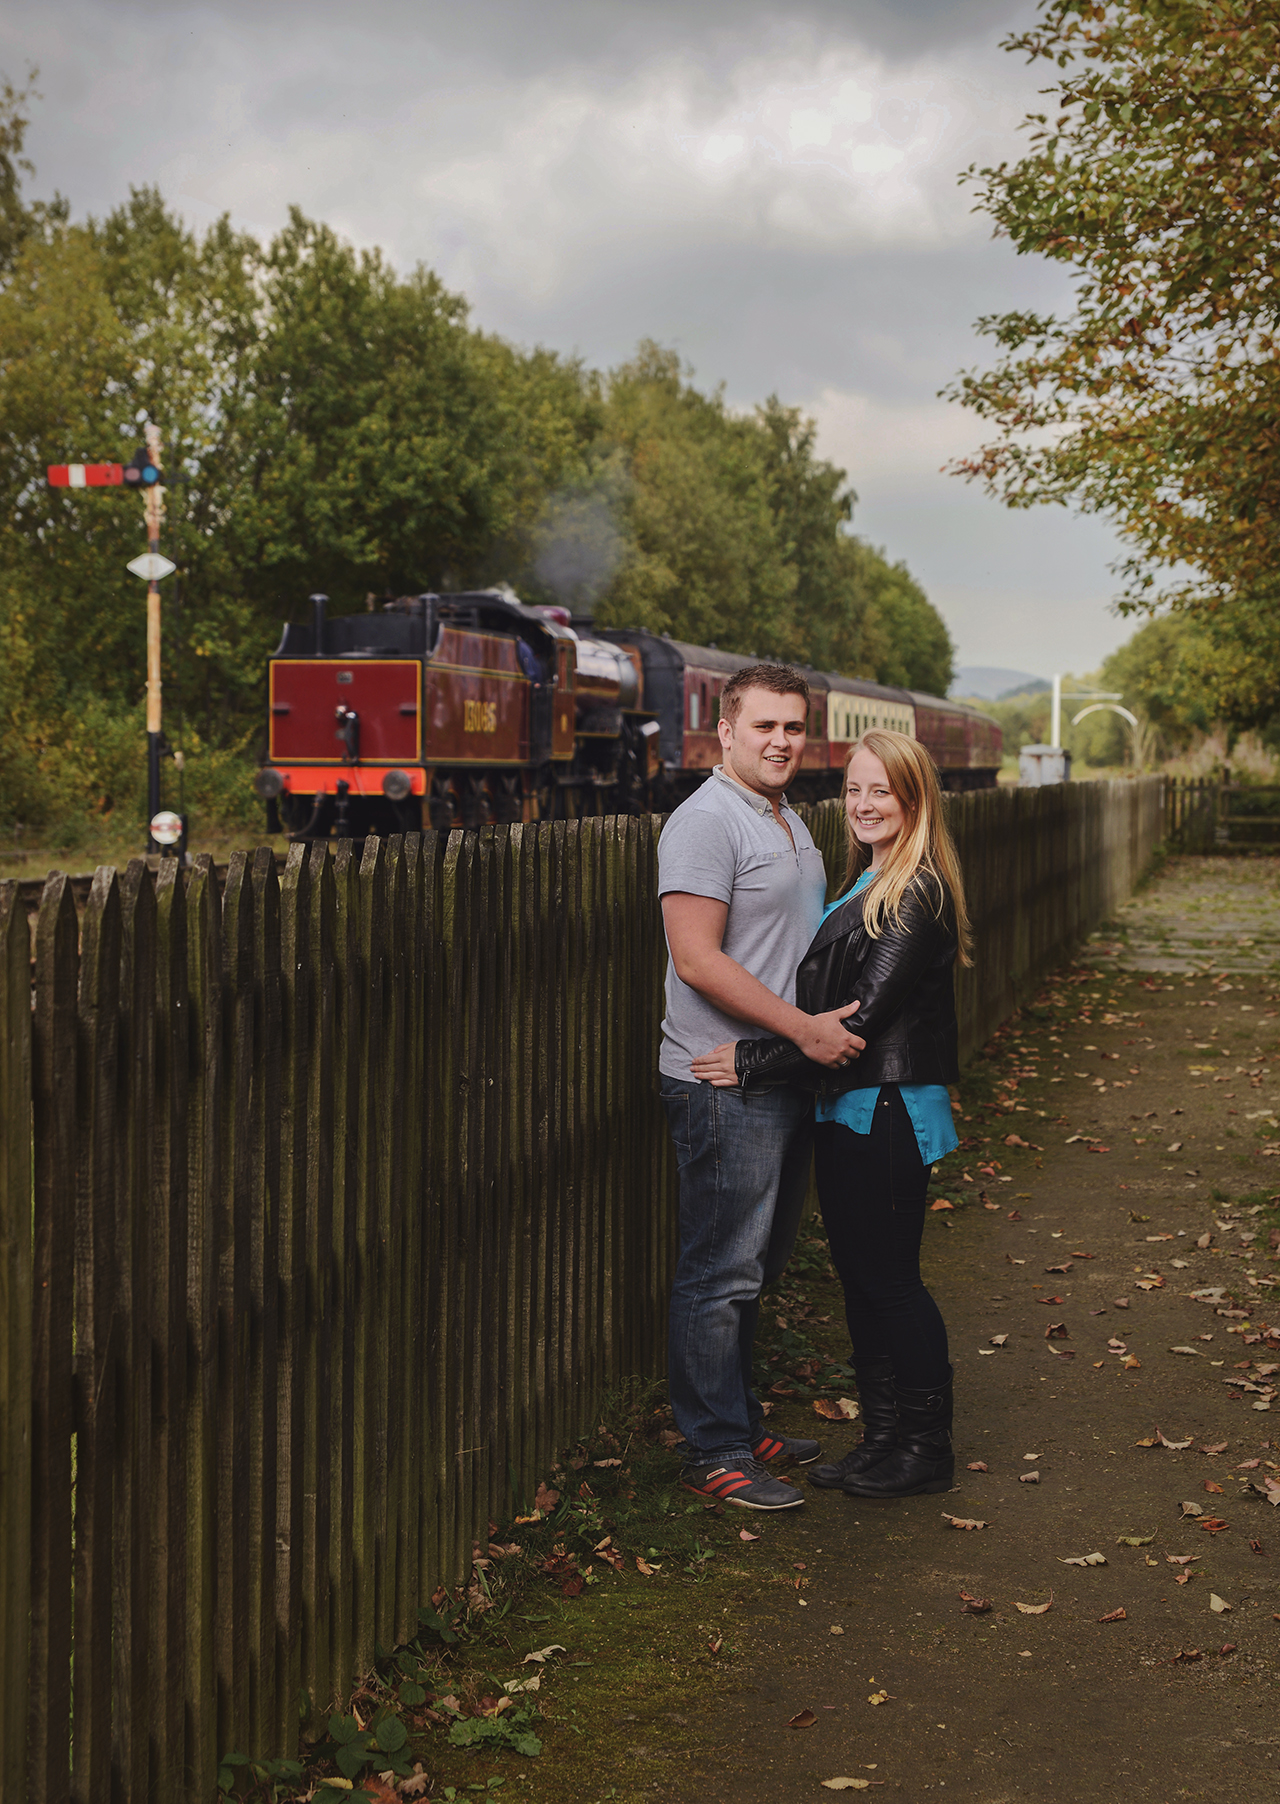 ramsbottom-train-steam-photography-bury.jpg